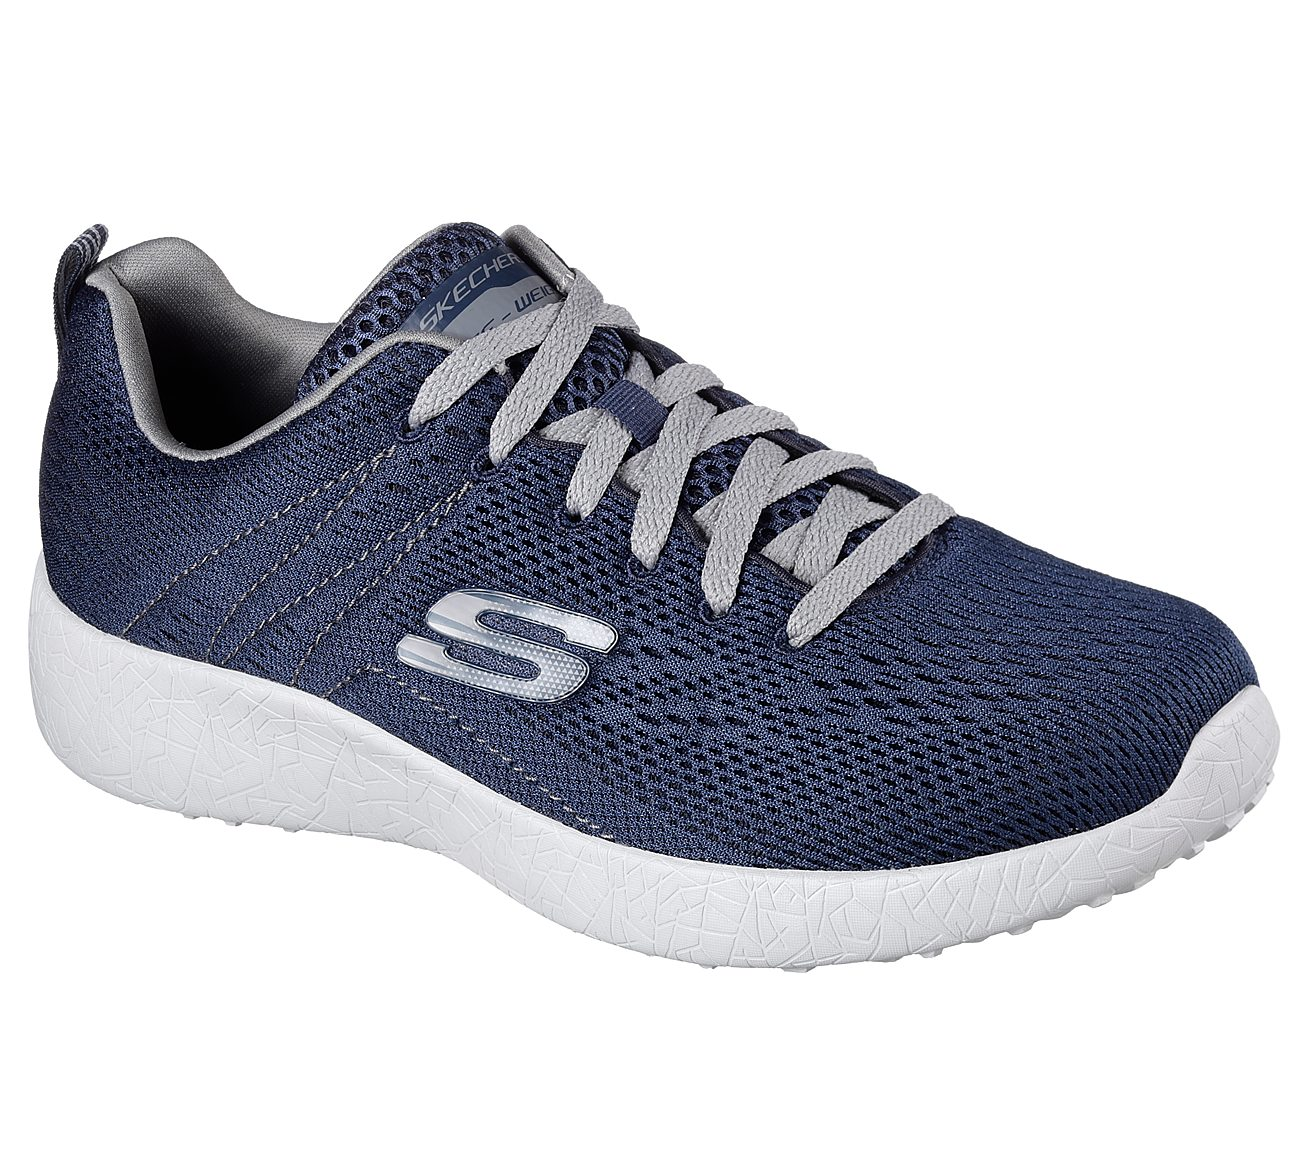 skechers shoes thailand